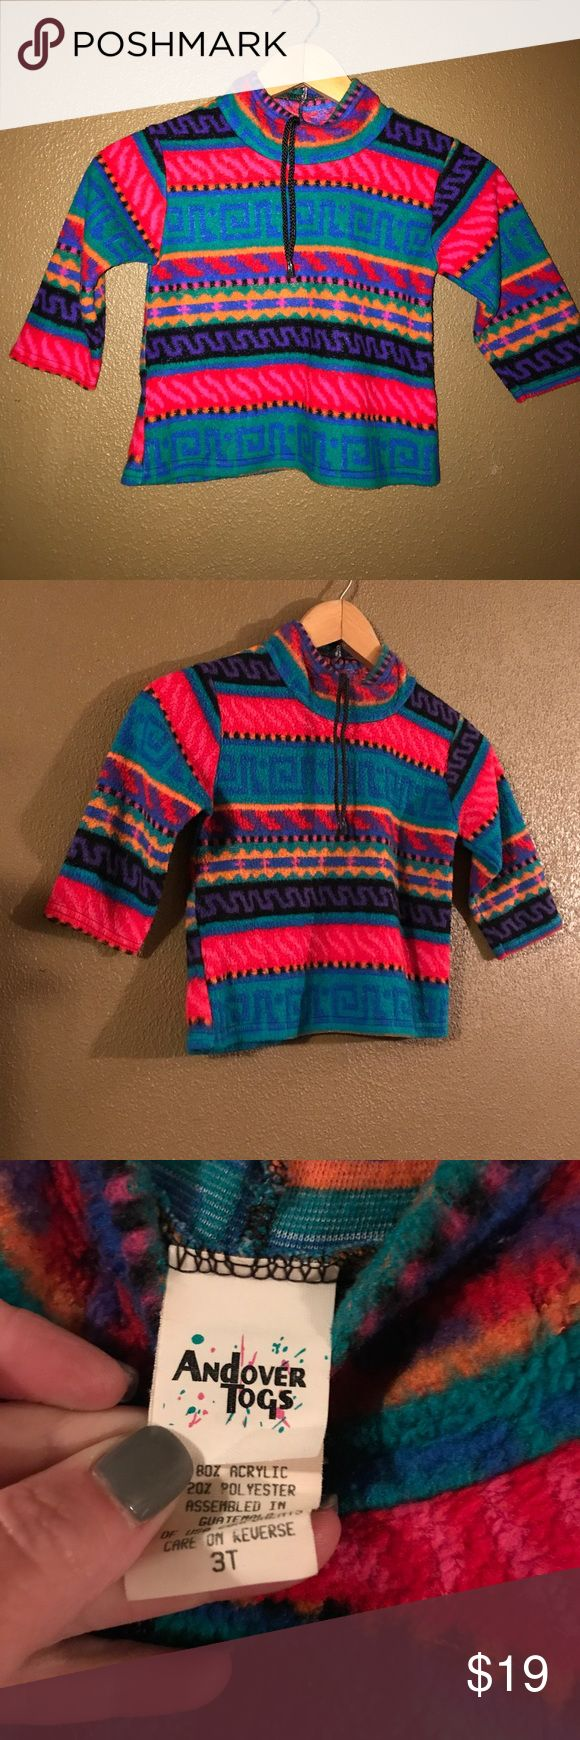 Vintage fleece pullover Size 3T by Andover Togs. (True to size). Super soft & warm. Still in great condition! Very trendy pullover ✌🏻Posting in girls, but colors would be suitable for boy, too. Vintage Shirts & Tops